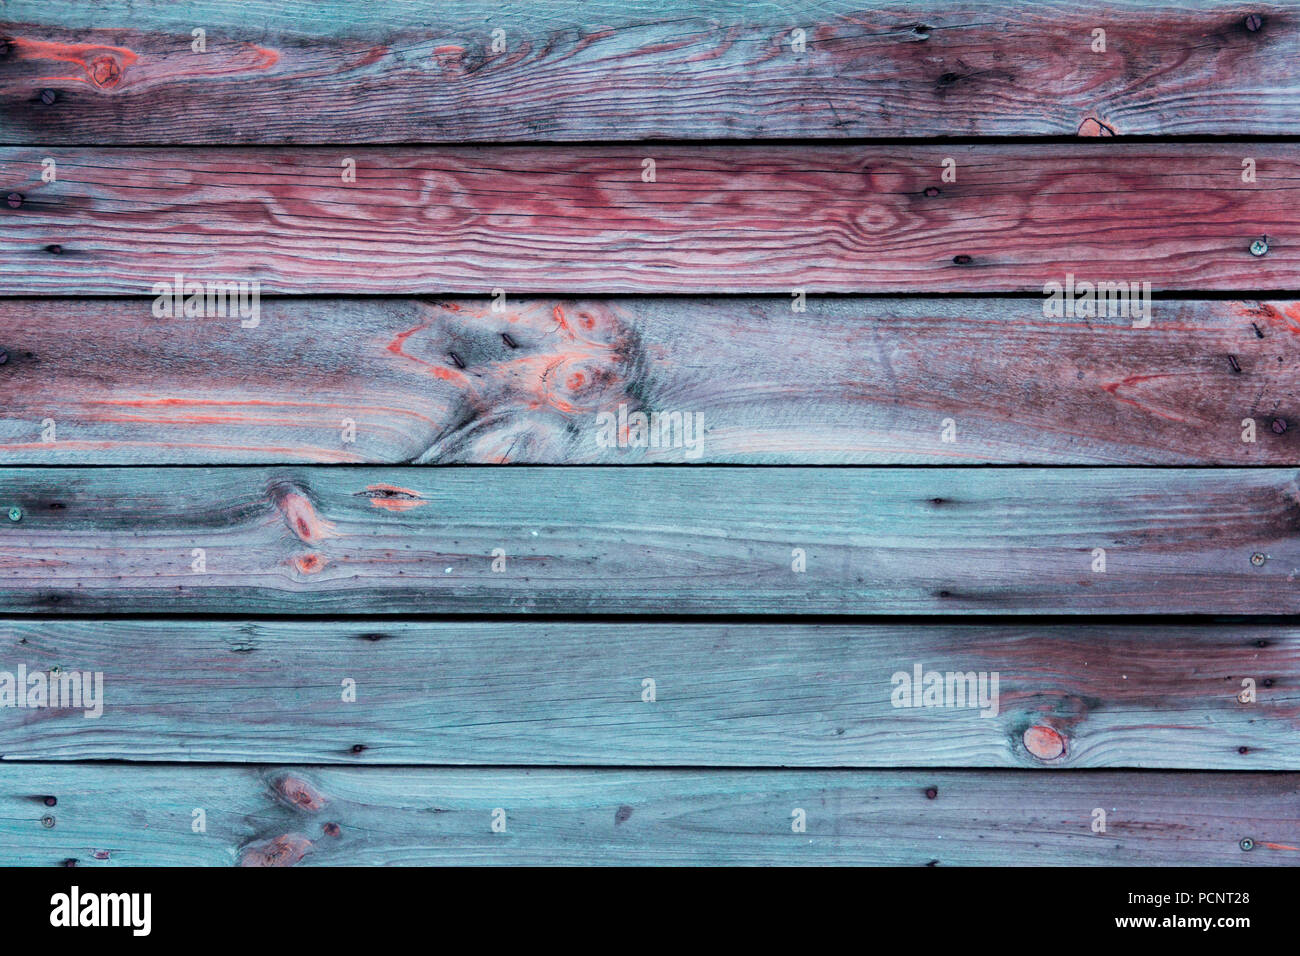 Close-up of the multicolor surface (wall, floor or overhead) made of wooden plank, panel or board in the turquoise, blue, red, claret, coral shades Stock Photo